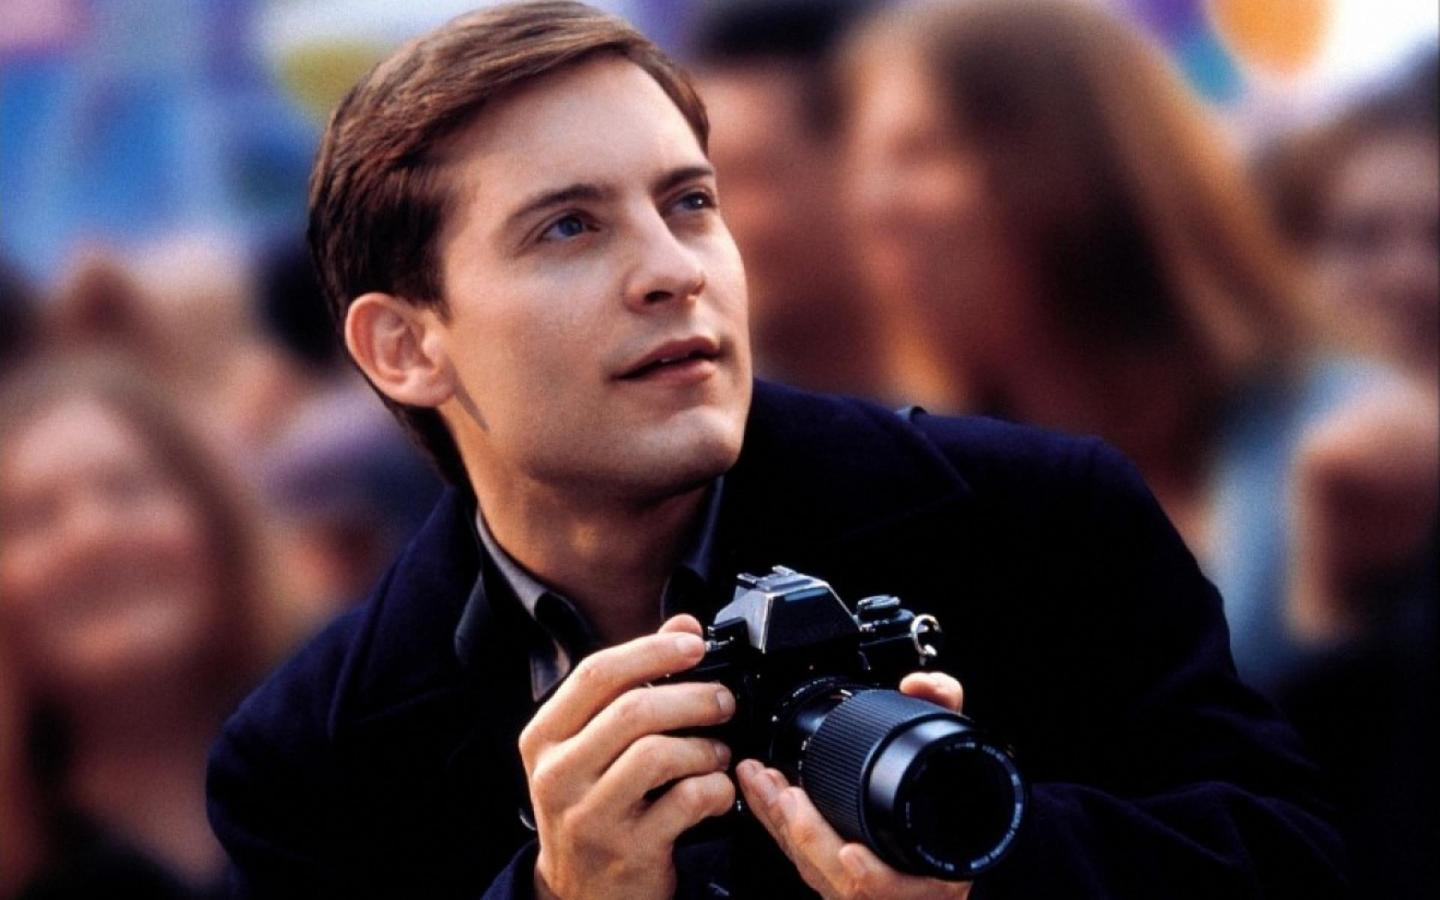 Tobey Maguire HD Backgrounds Spiderman Wallpape Wallpapers